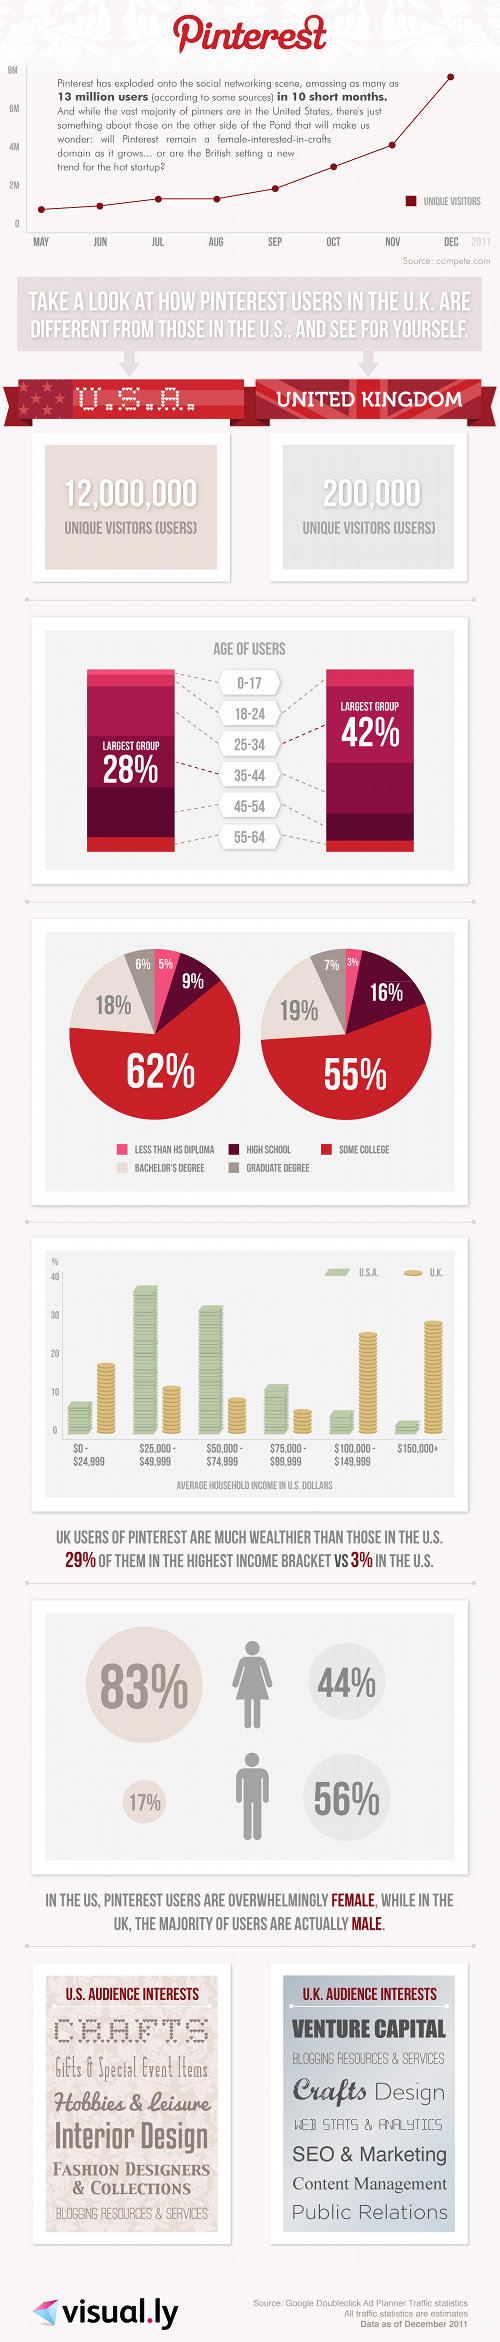 Pinterest: How do US and UK users compare?